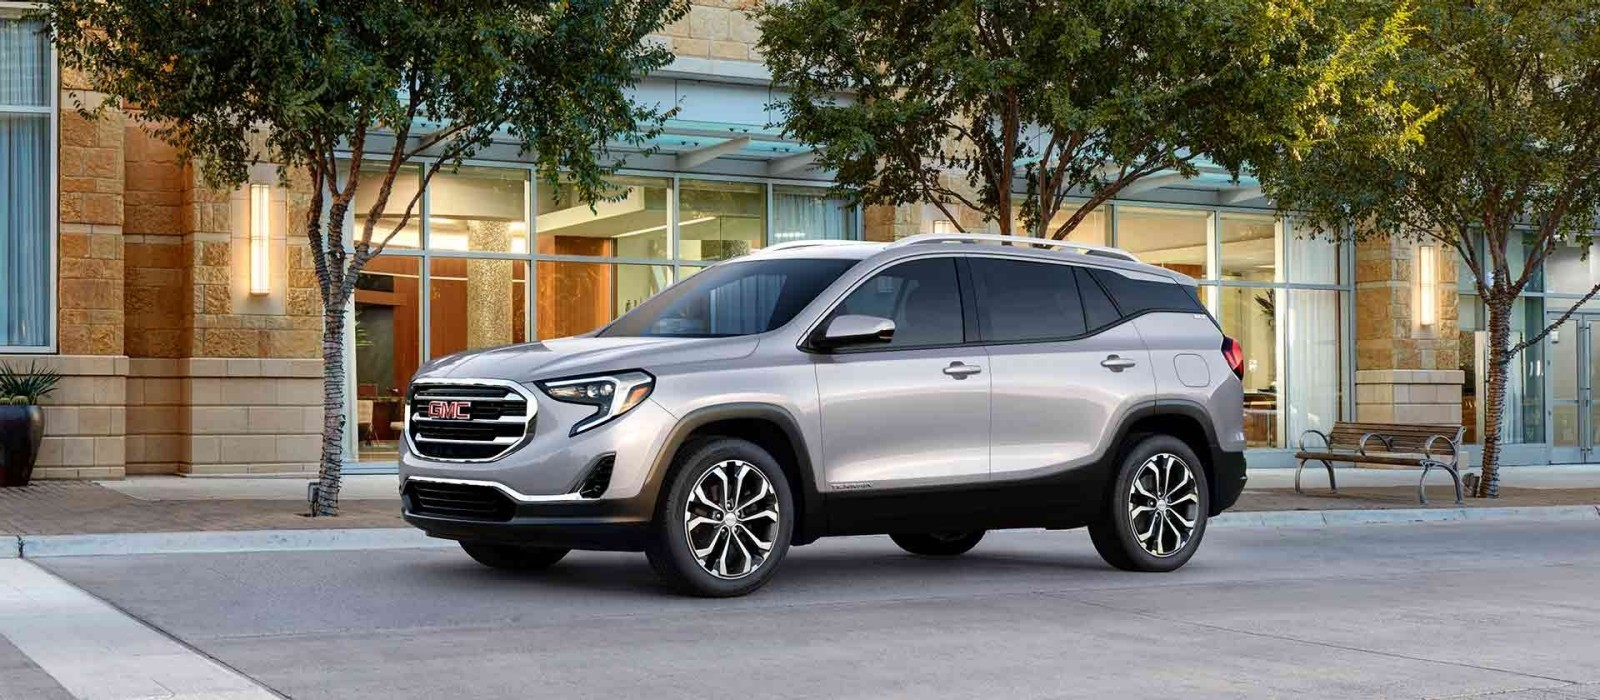 2018 GMC Terrain Exterior Side View